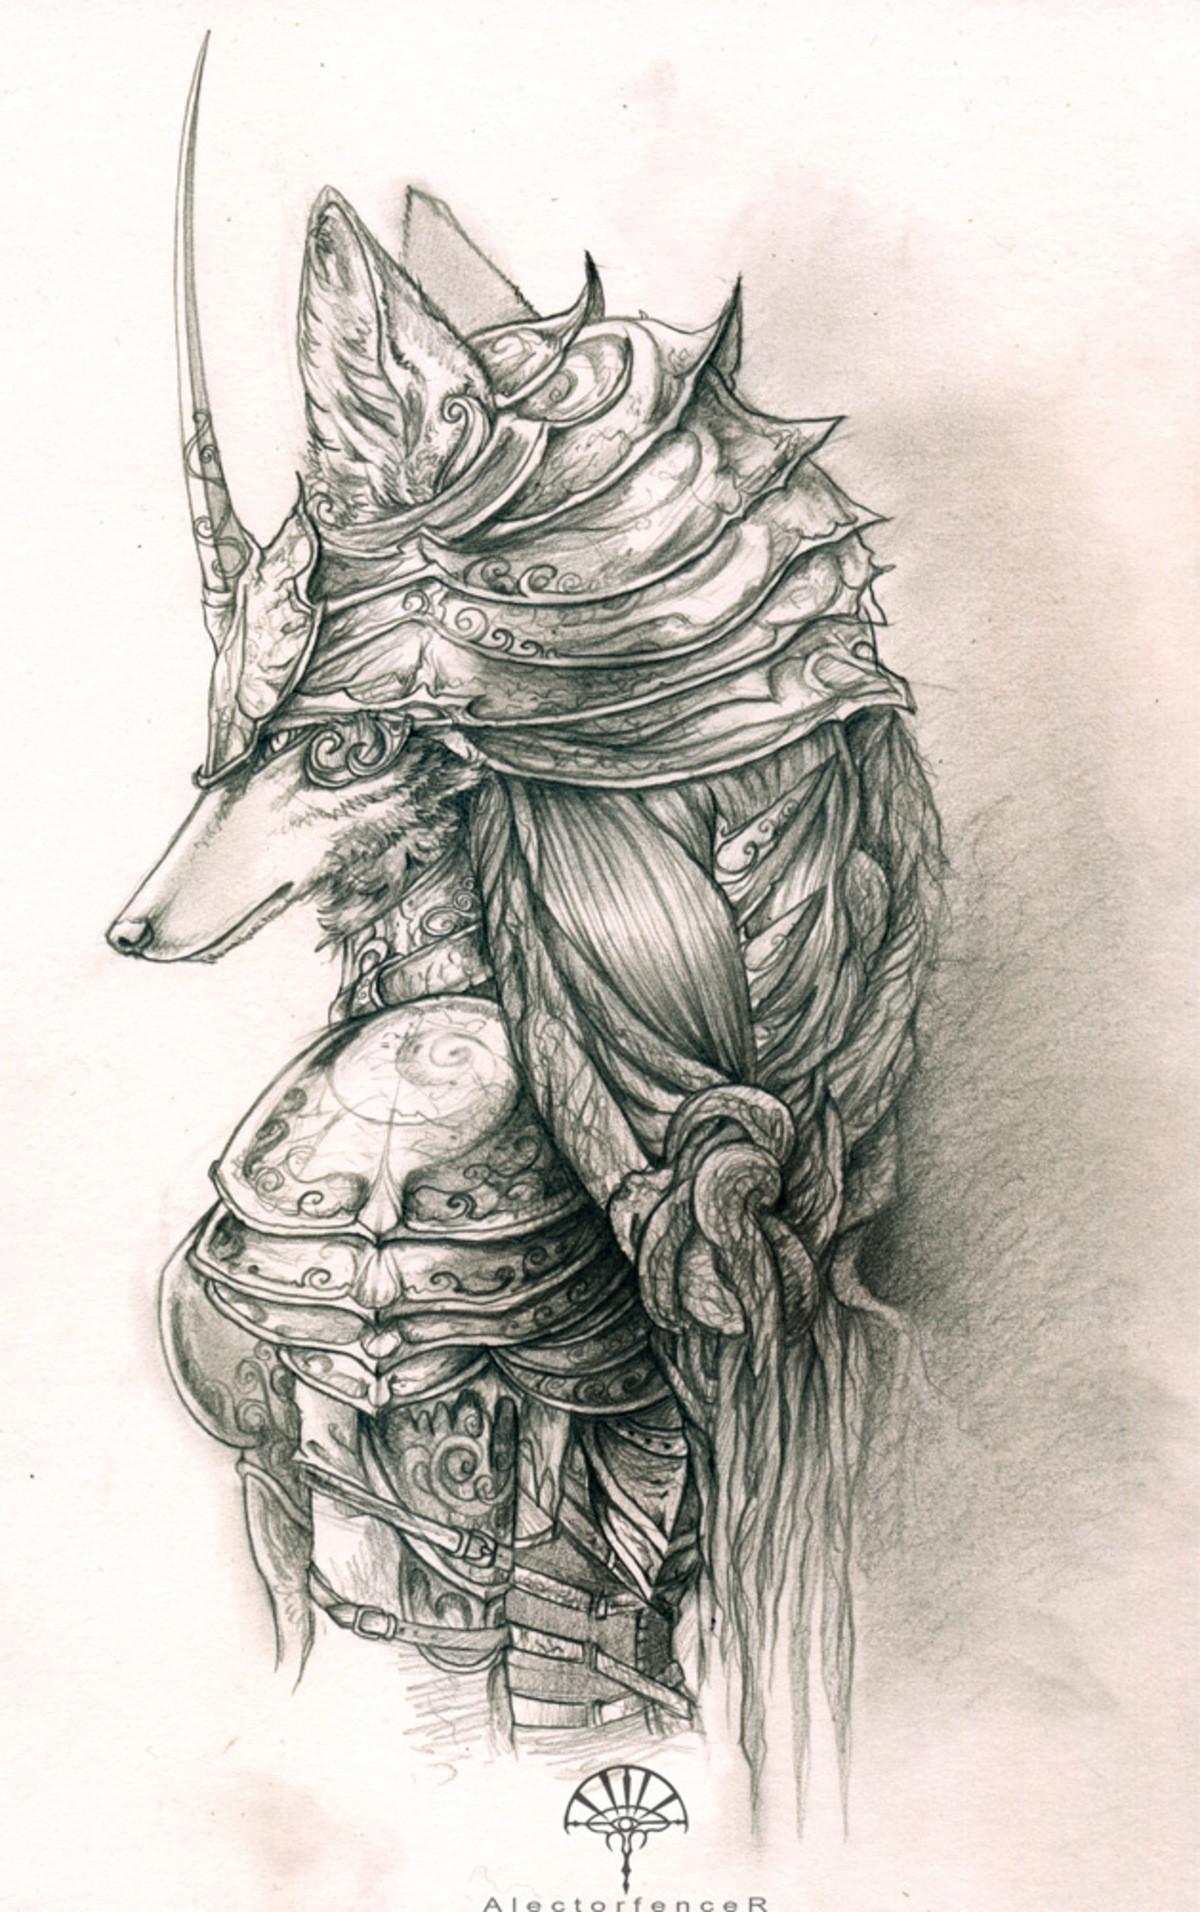 AlectorFencer . Wanna show your friends some furry art? No? Too bad, you're gonna anyway because this is Furry Art You Can Show Your Friends numero